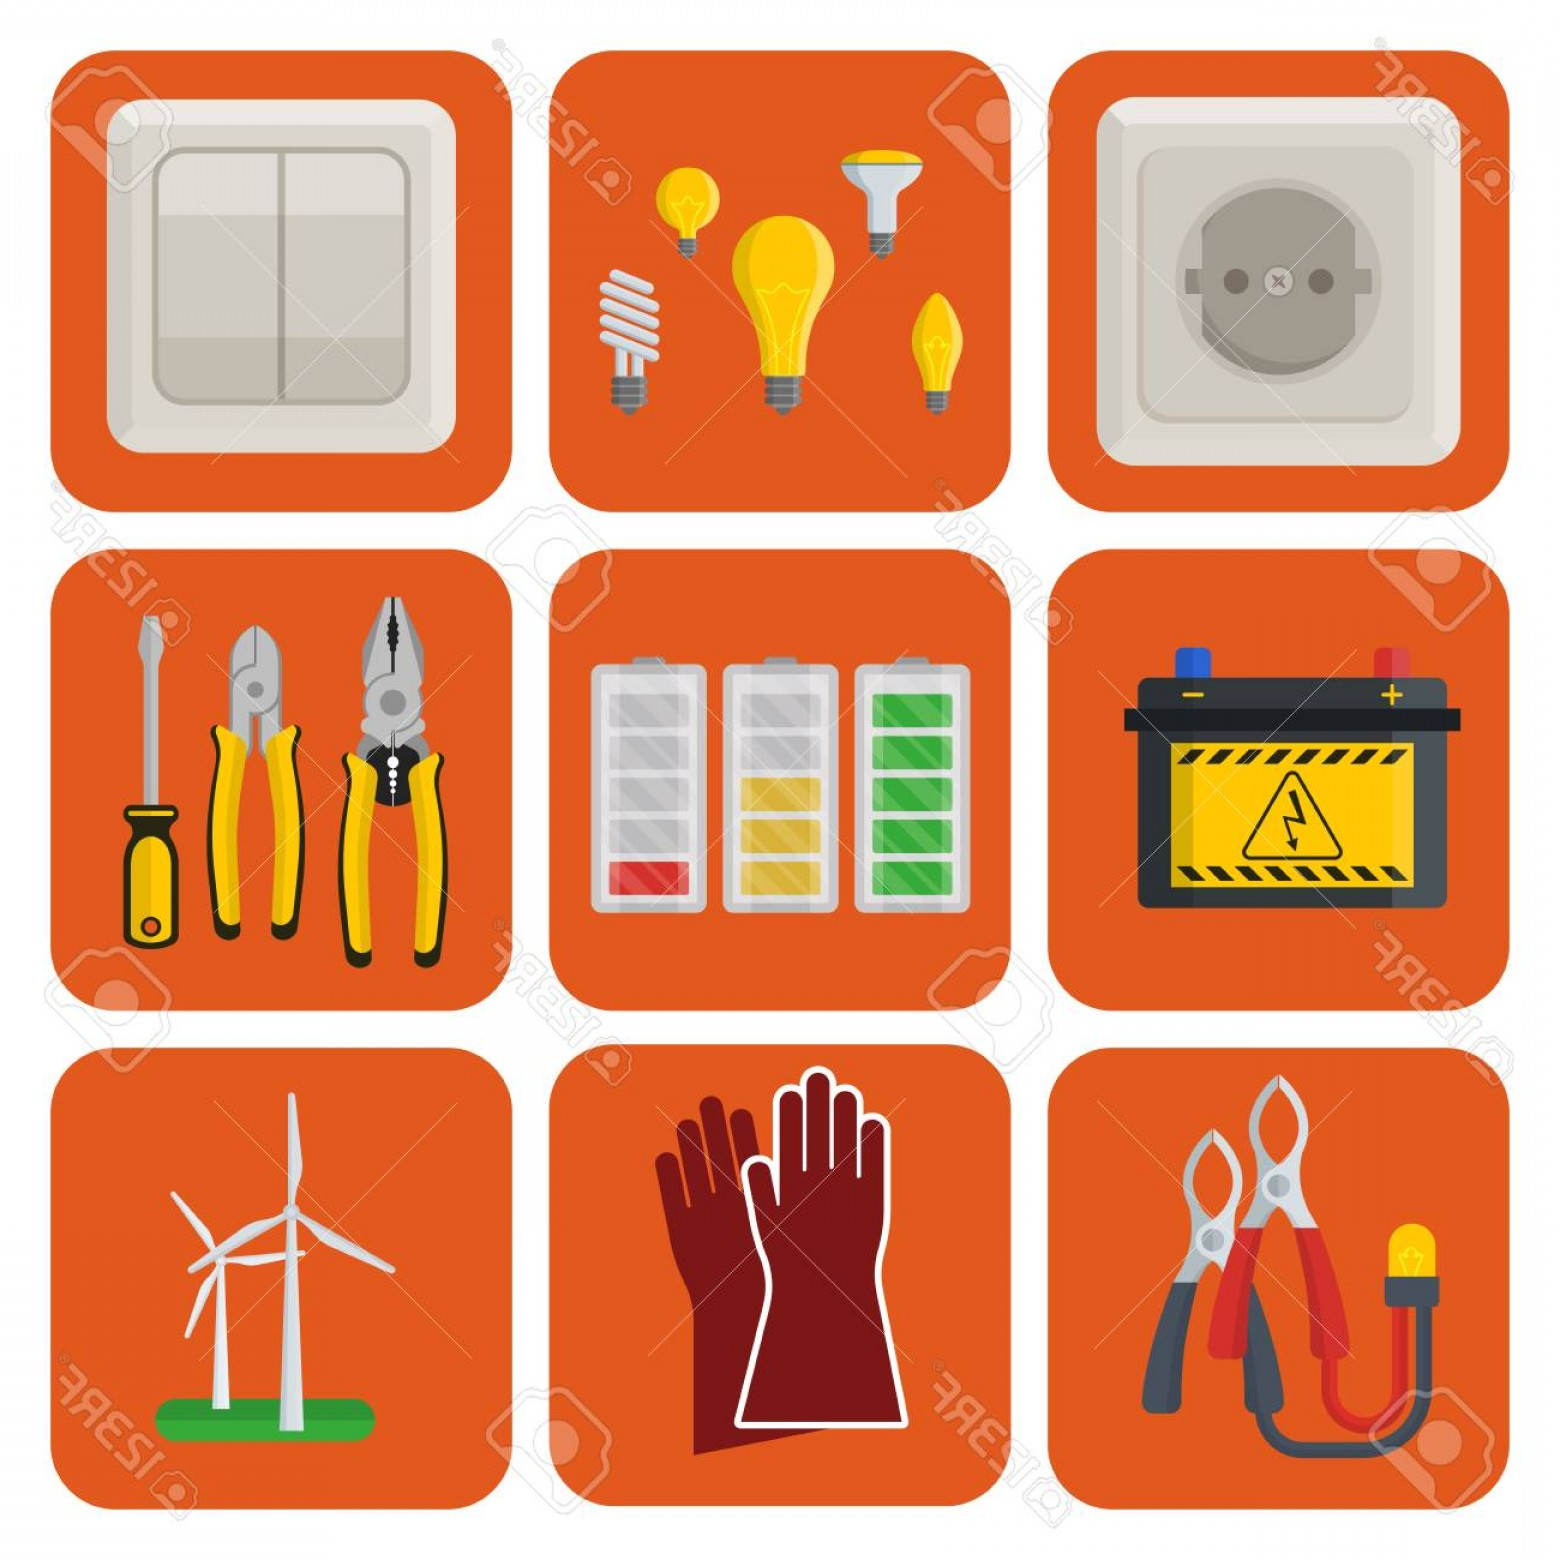 Battery Electricity Vector Images: Photostock Illustration Energy Electricity Vector Power Icons Battery Illustration Industrial Electrician Voltage Electricit